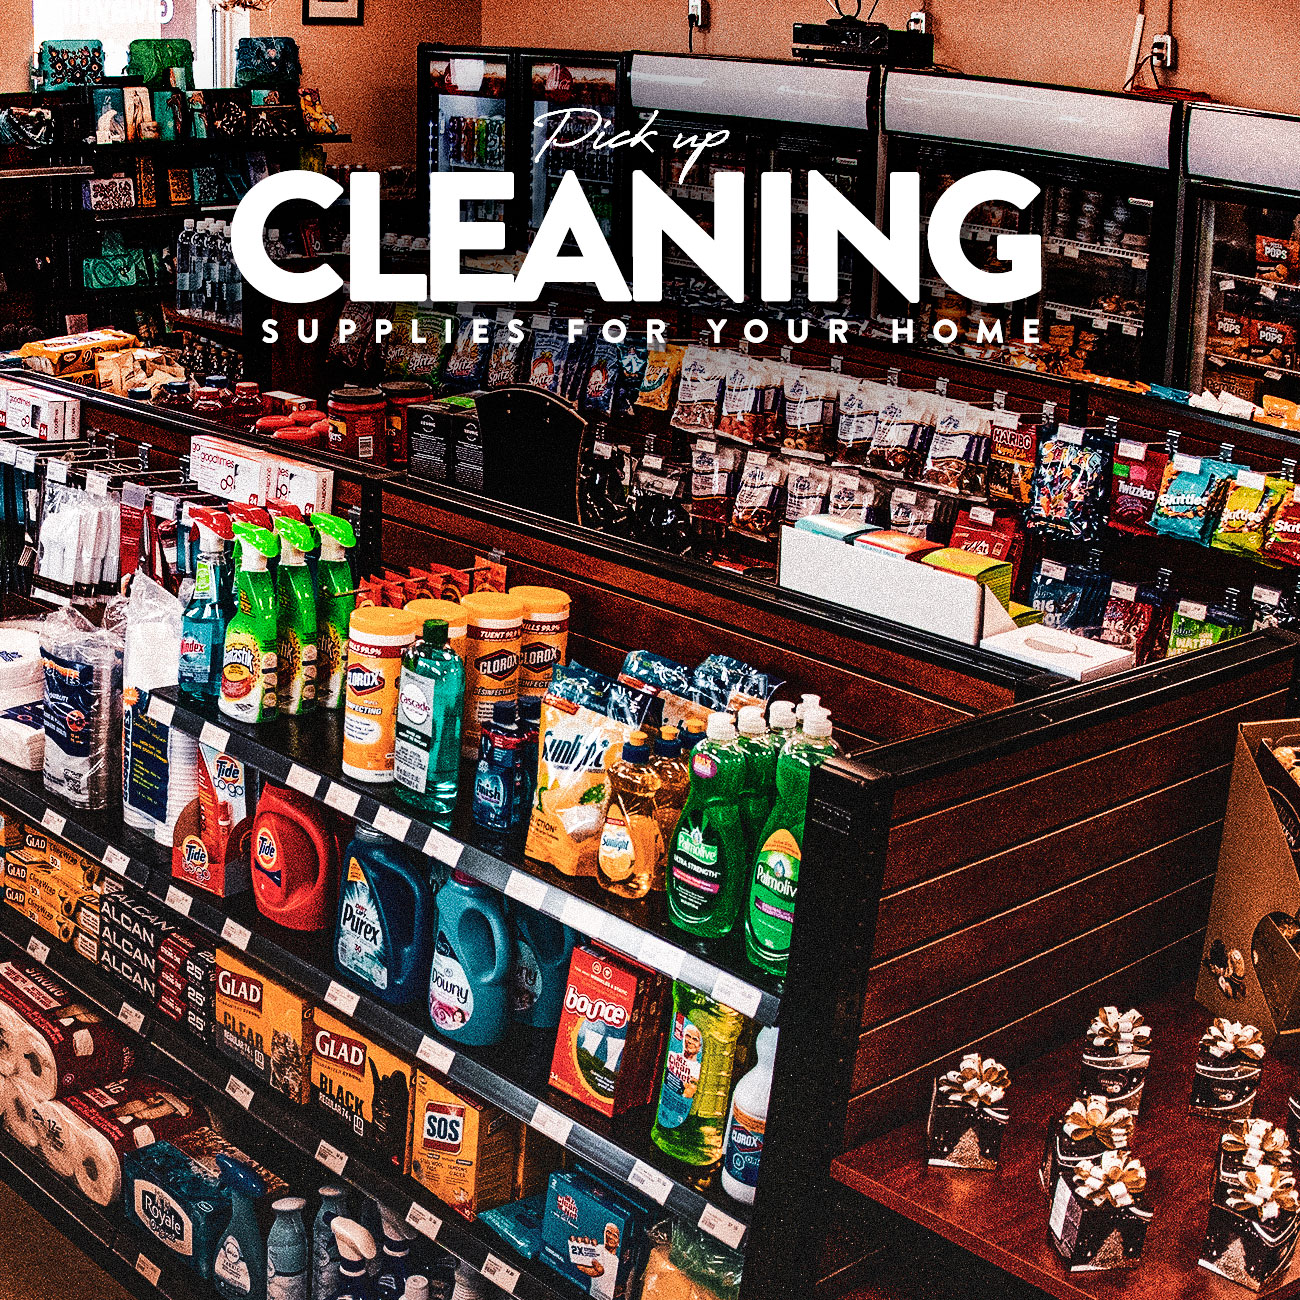 Pick up cleaning supplies for your home